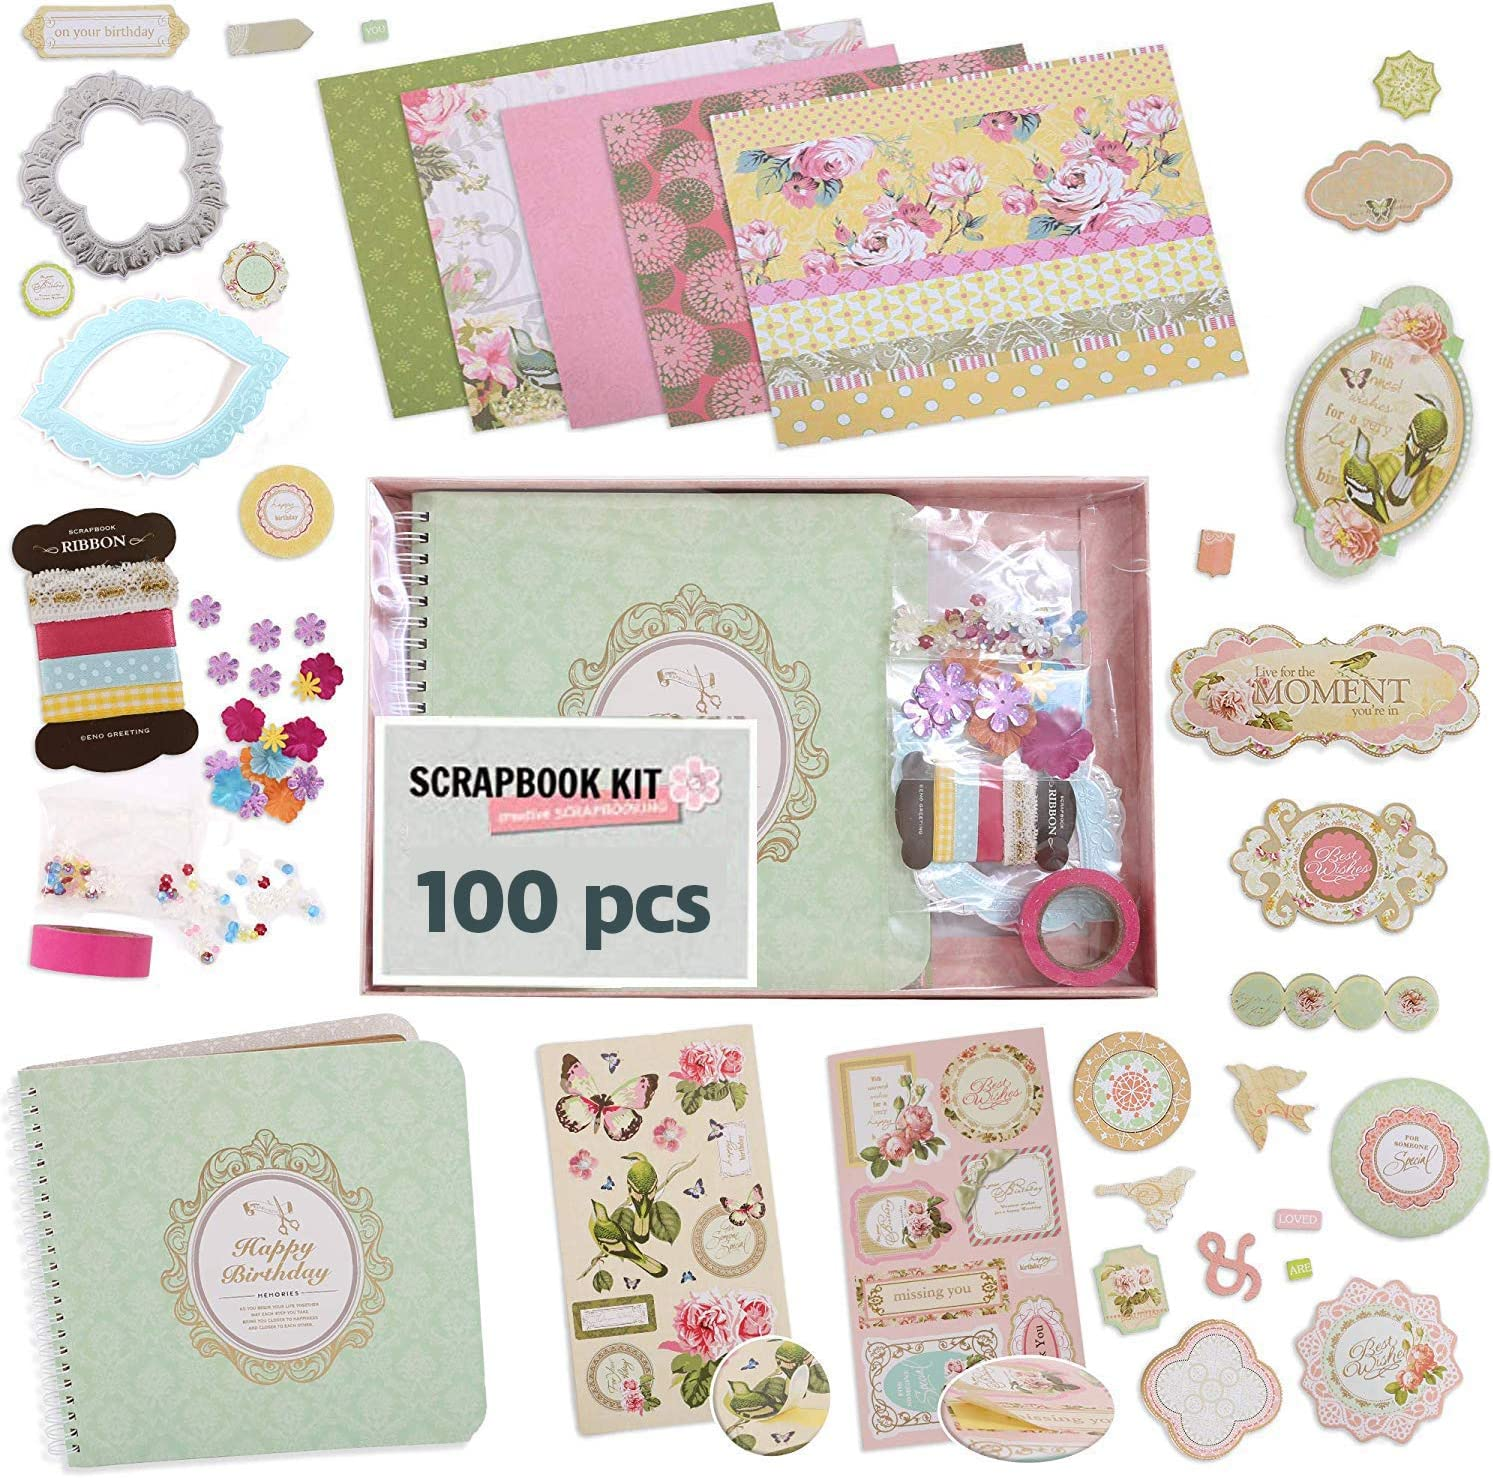 Hardcover Coil-Bound Scrapbook Album Including Stationery Set with Gold Embossed Stickers Ribbons /& Journaling Supplies. PICKMEs D.I.Y Floral Scrapbook Kits for Adults /& Kids 7.5 x 8, 100Pc